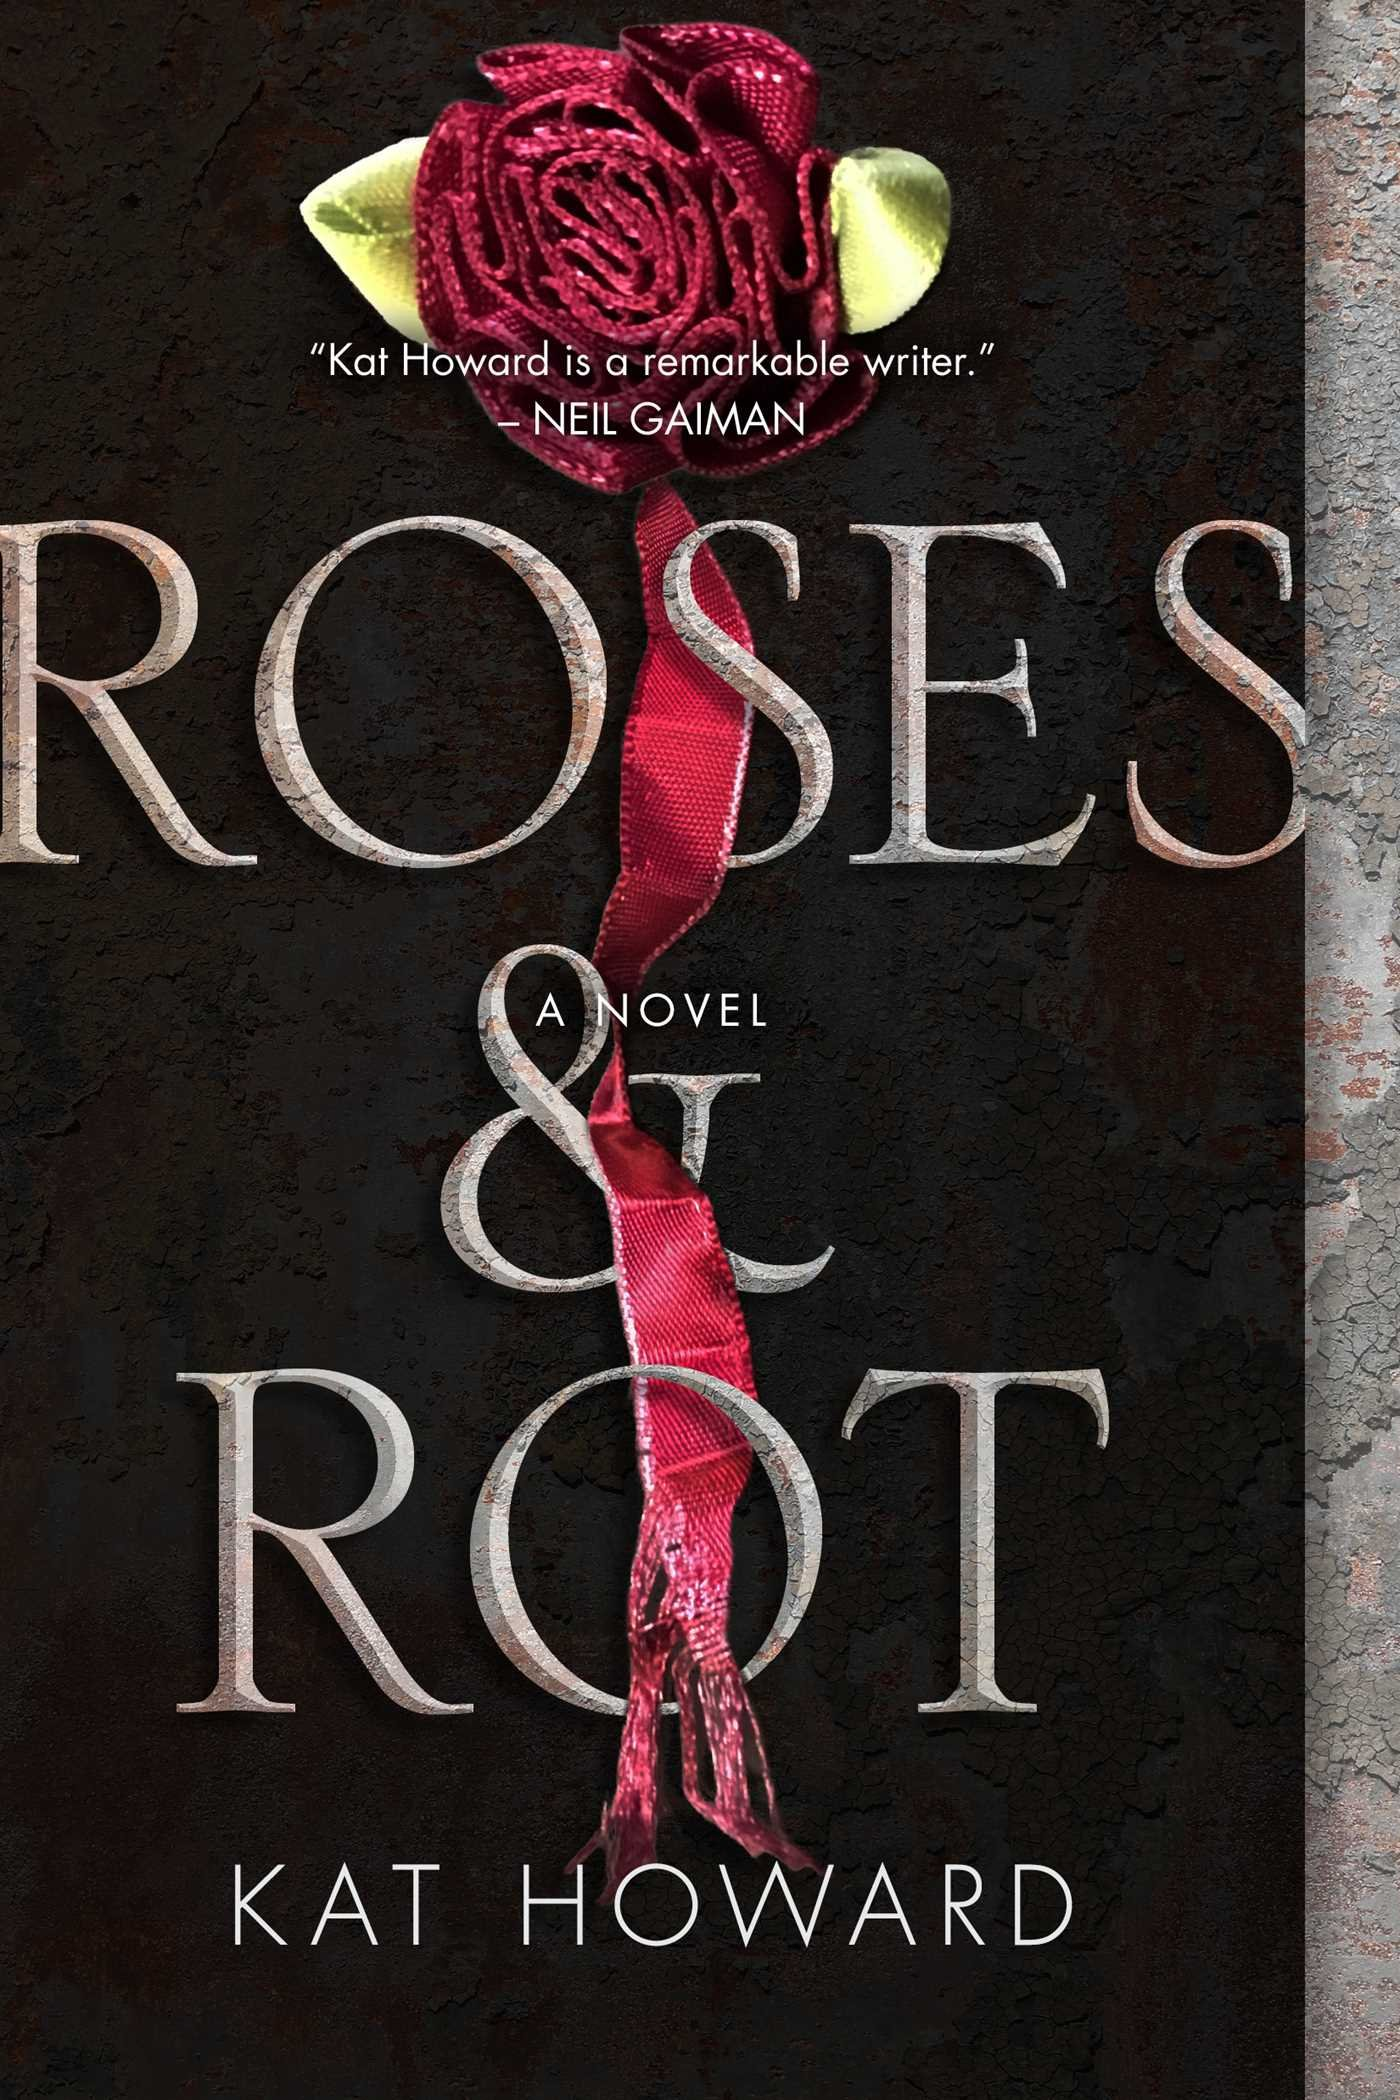 Roses and rot kat howard 9781481451178 amazon books fandeluxe Gallery